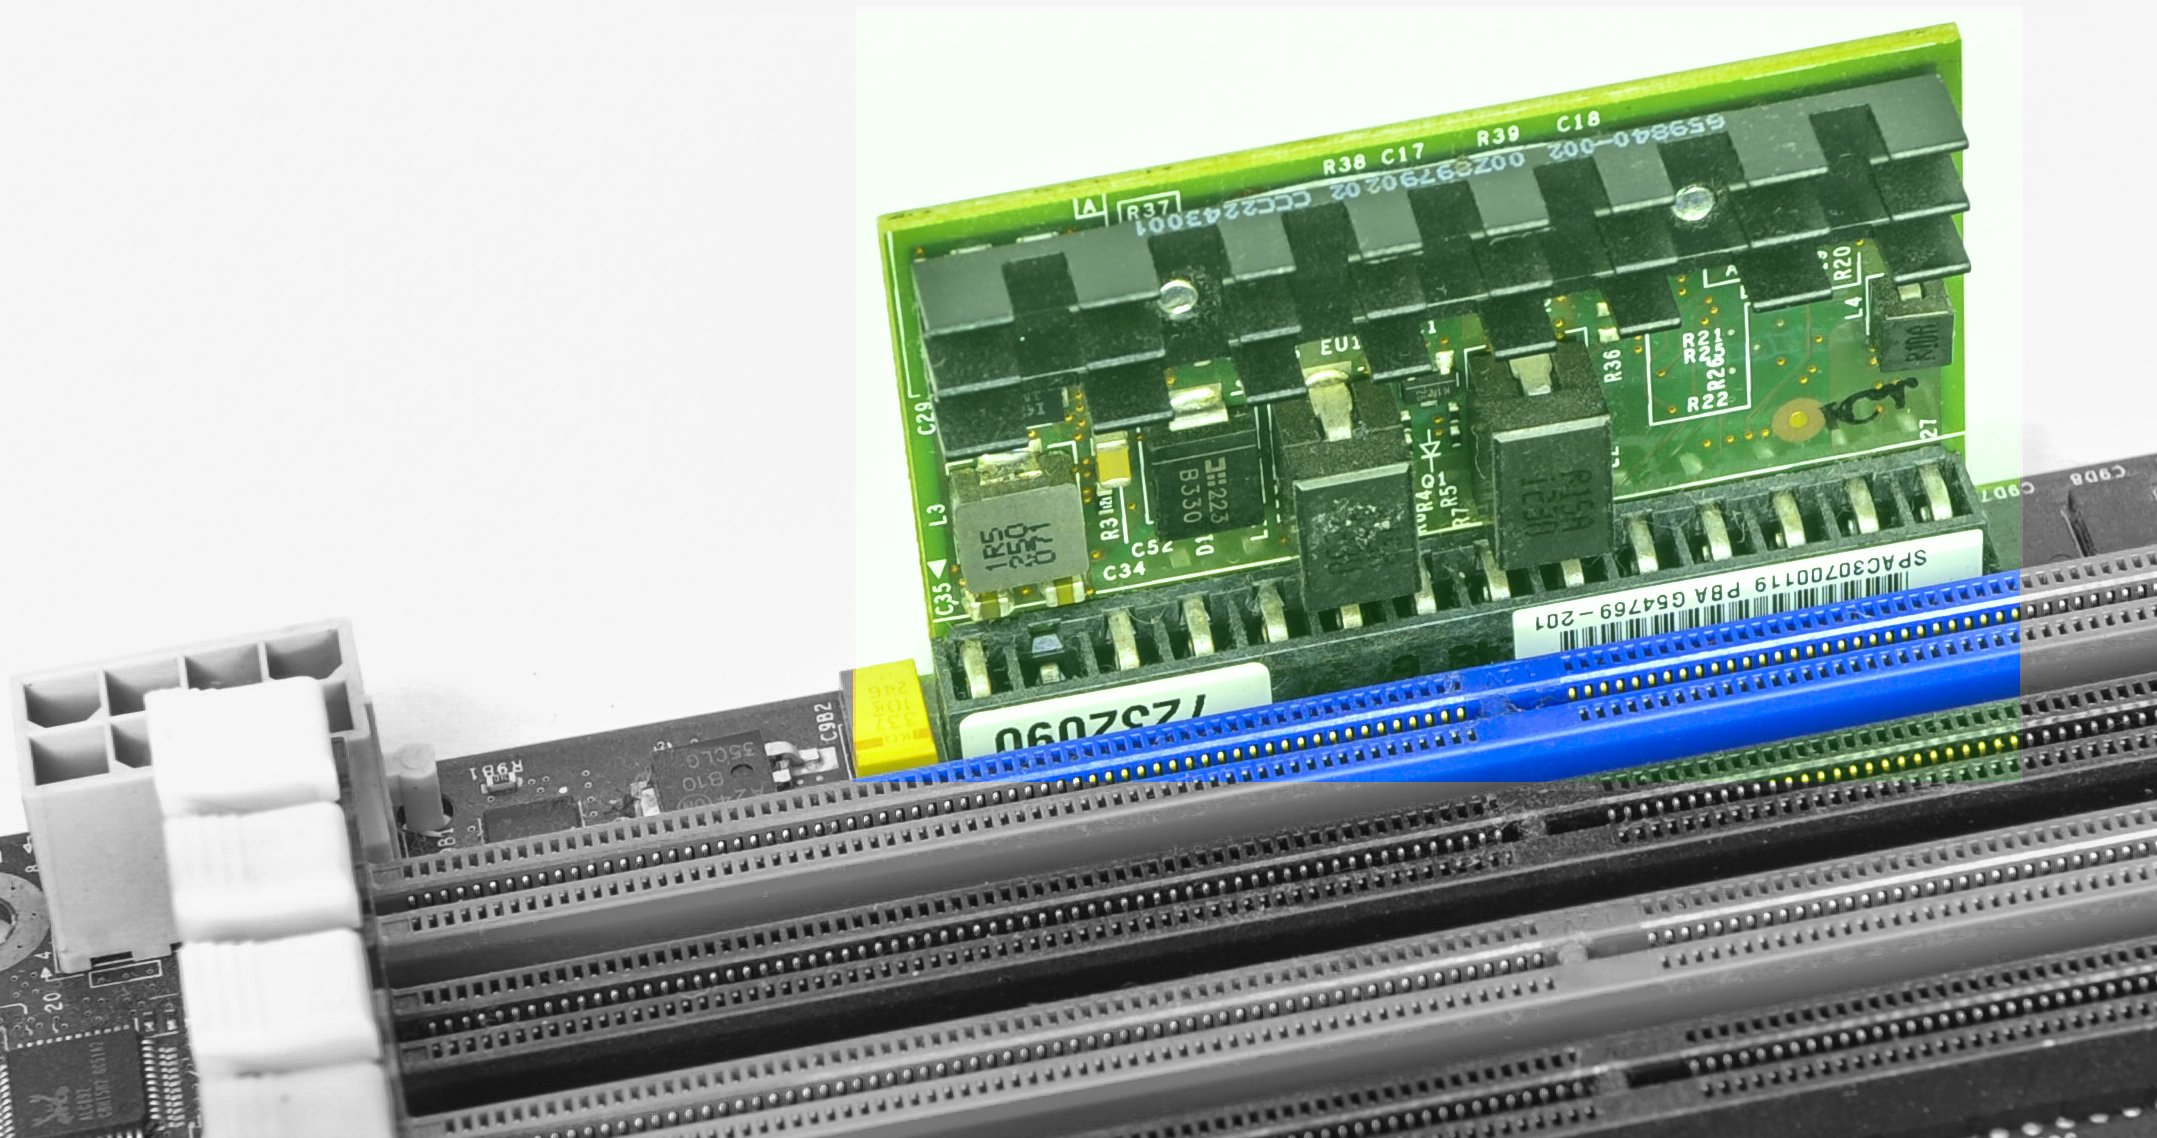 Review And Usage Of Evga Epower V Power Module Or Photo Computer Electronic Circuit Cpu Board Breaking Binary Code Image 3 2 Dc Regulator On Left 12 Controller Mb For Right